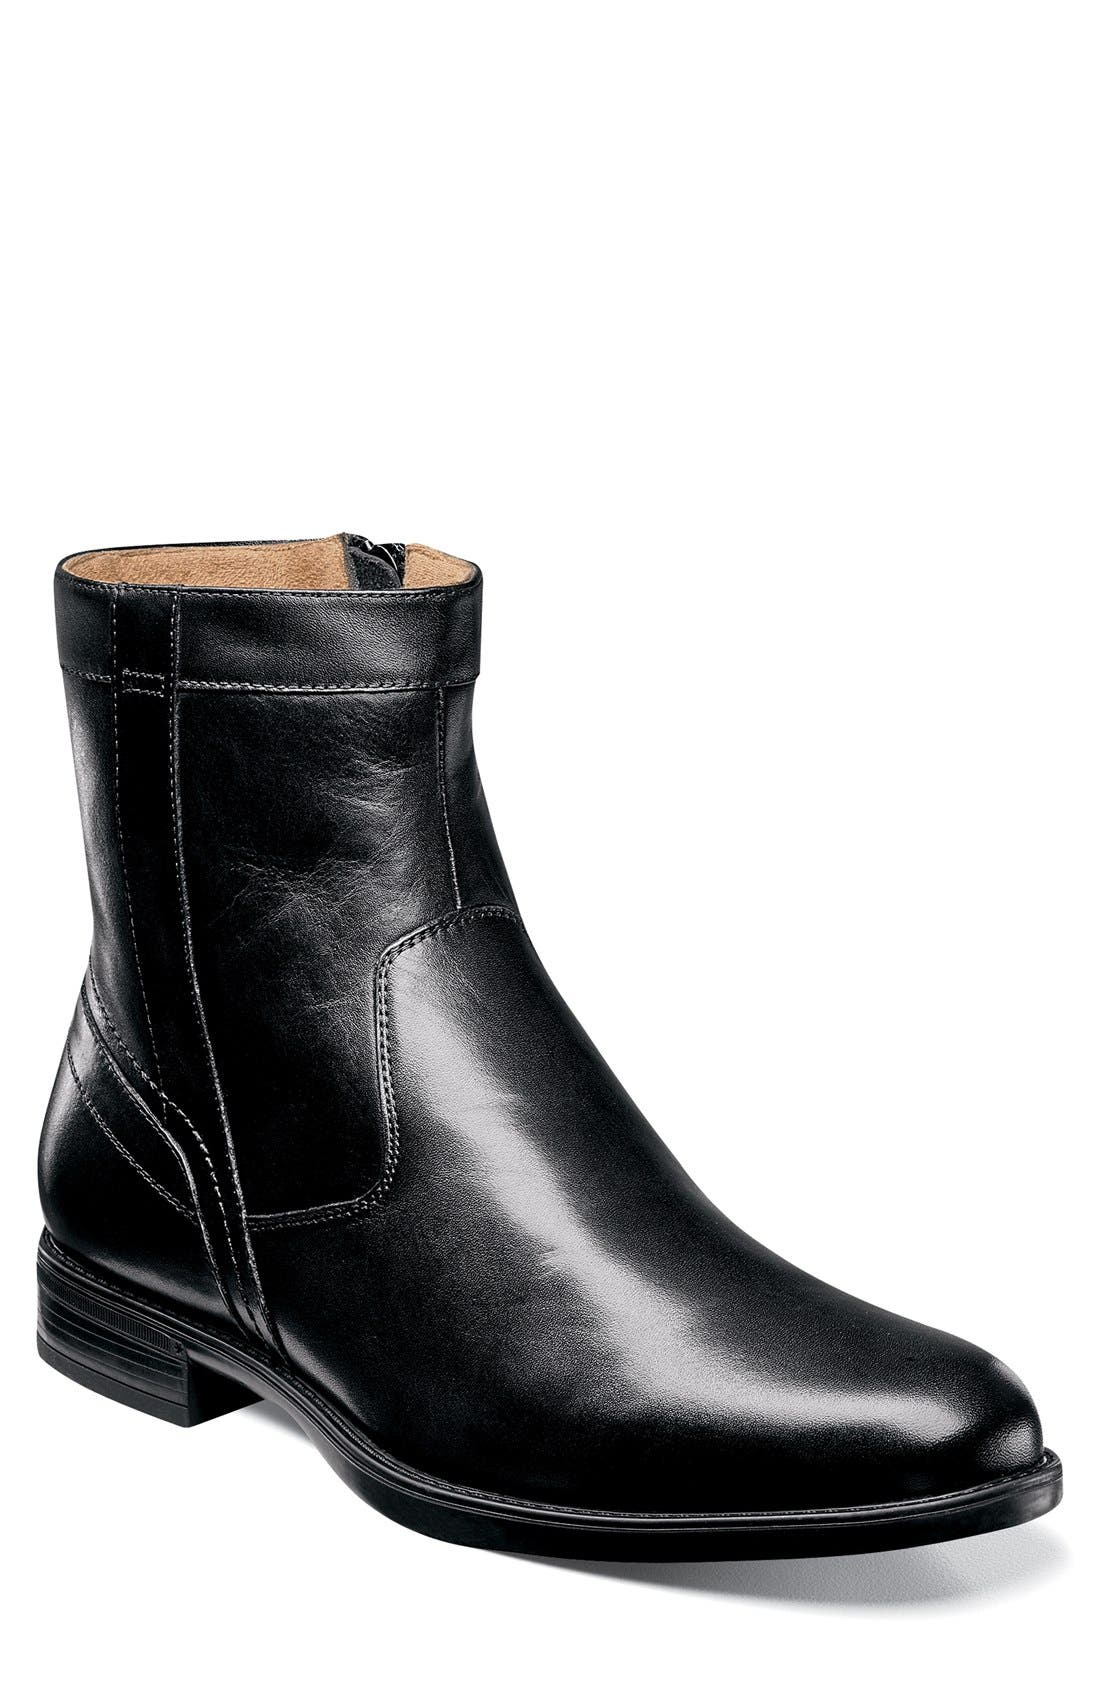 'Midtown' Zip Boot,                             Main thumbnail 1, color,                             BLACK LEATHER